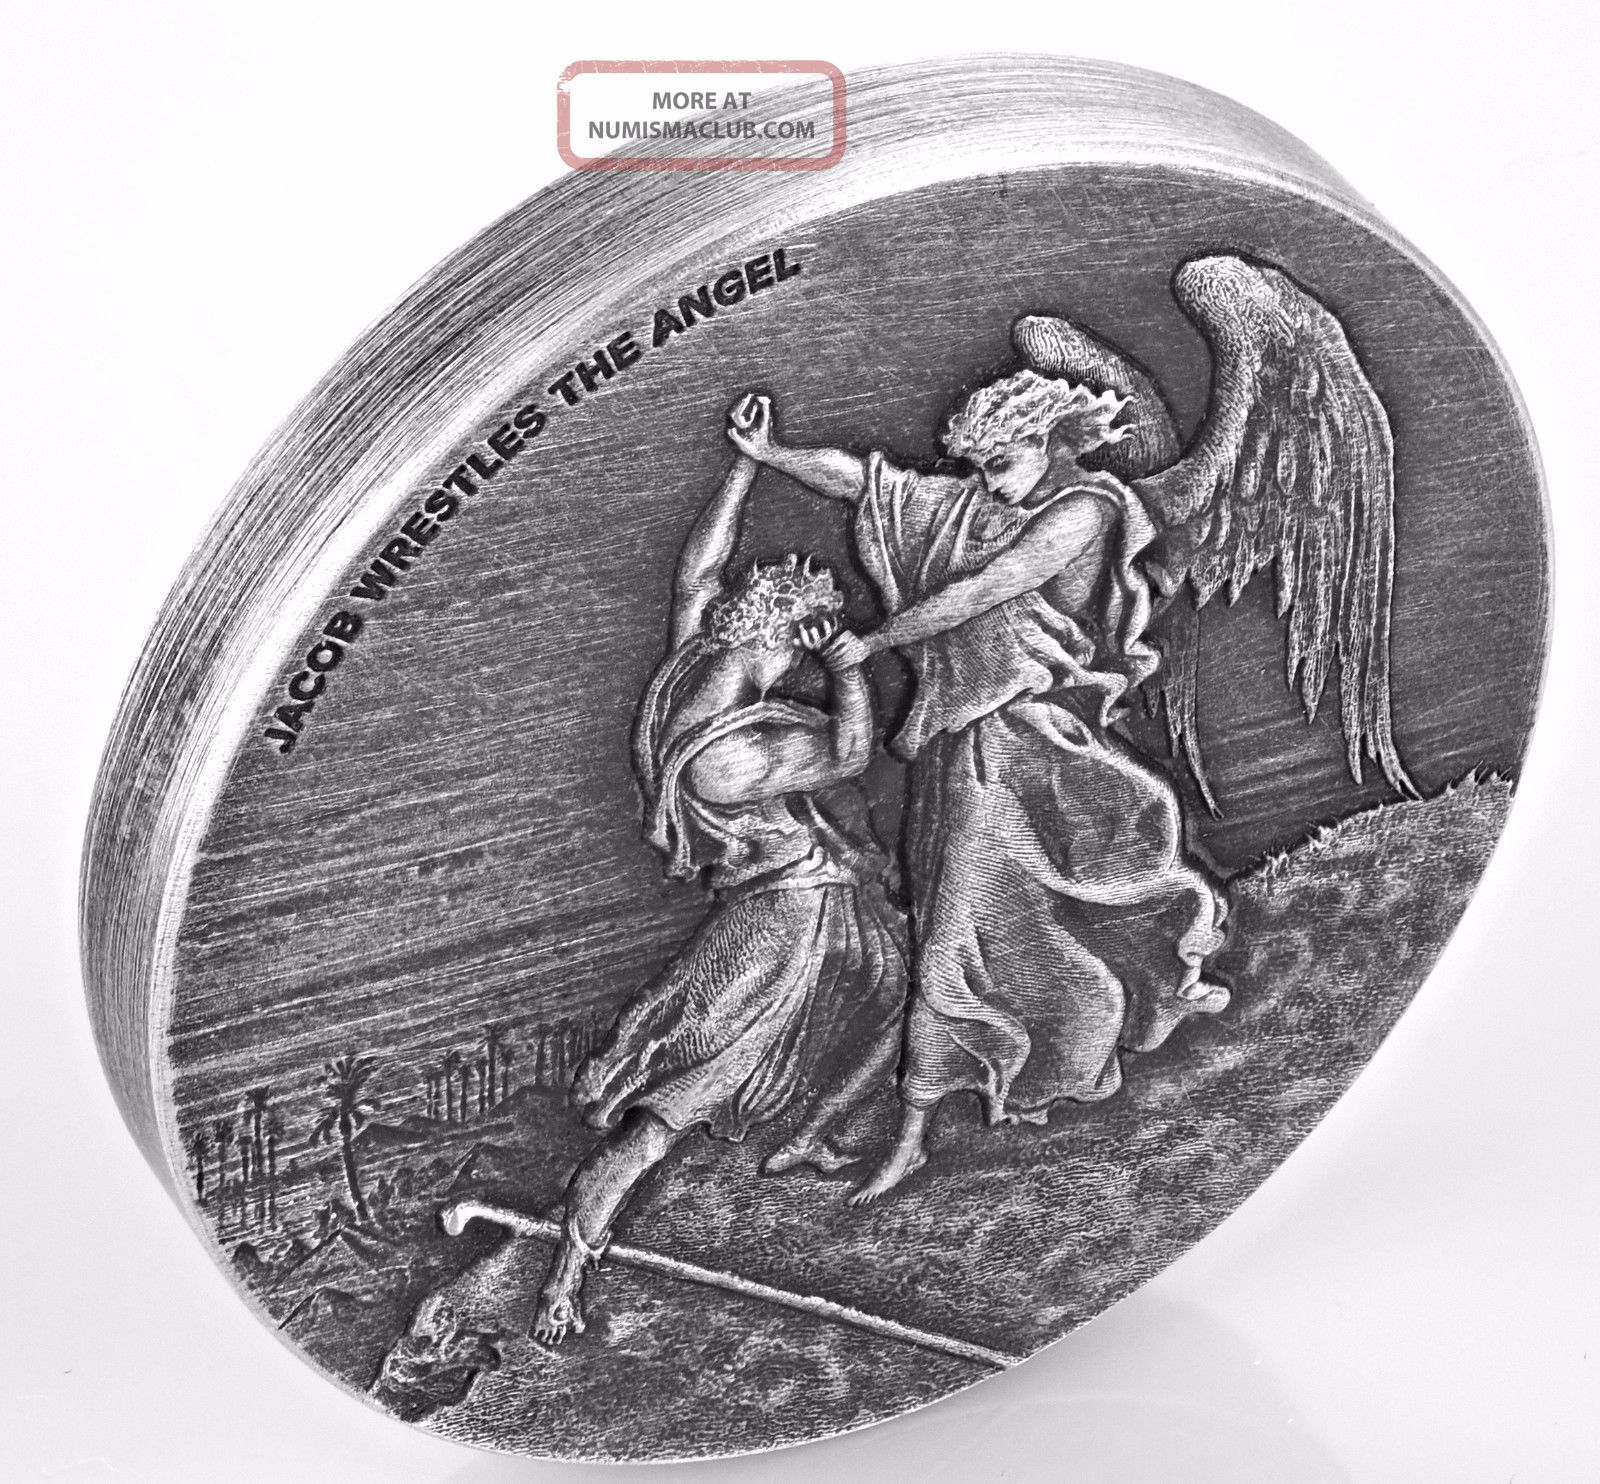 Jacob Wrestles The Angel Biblical Series 2 Oz Silver Coin Niue 2017 Australia & Oceania photo